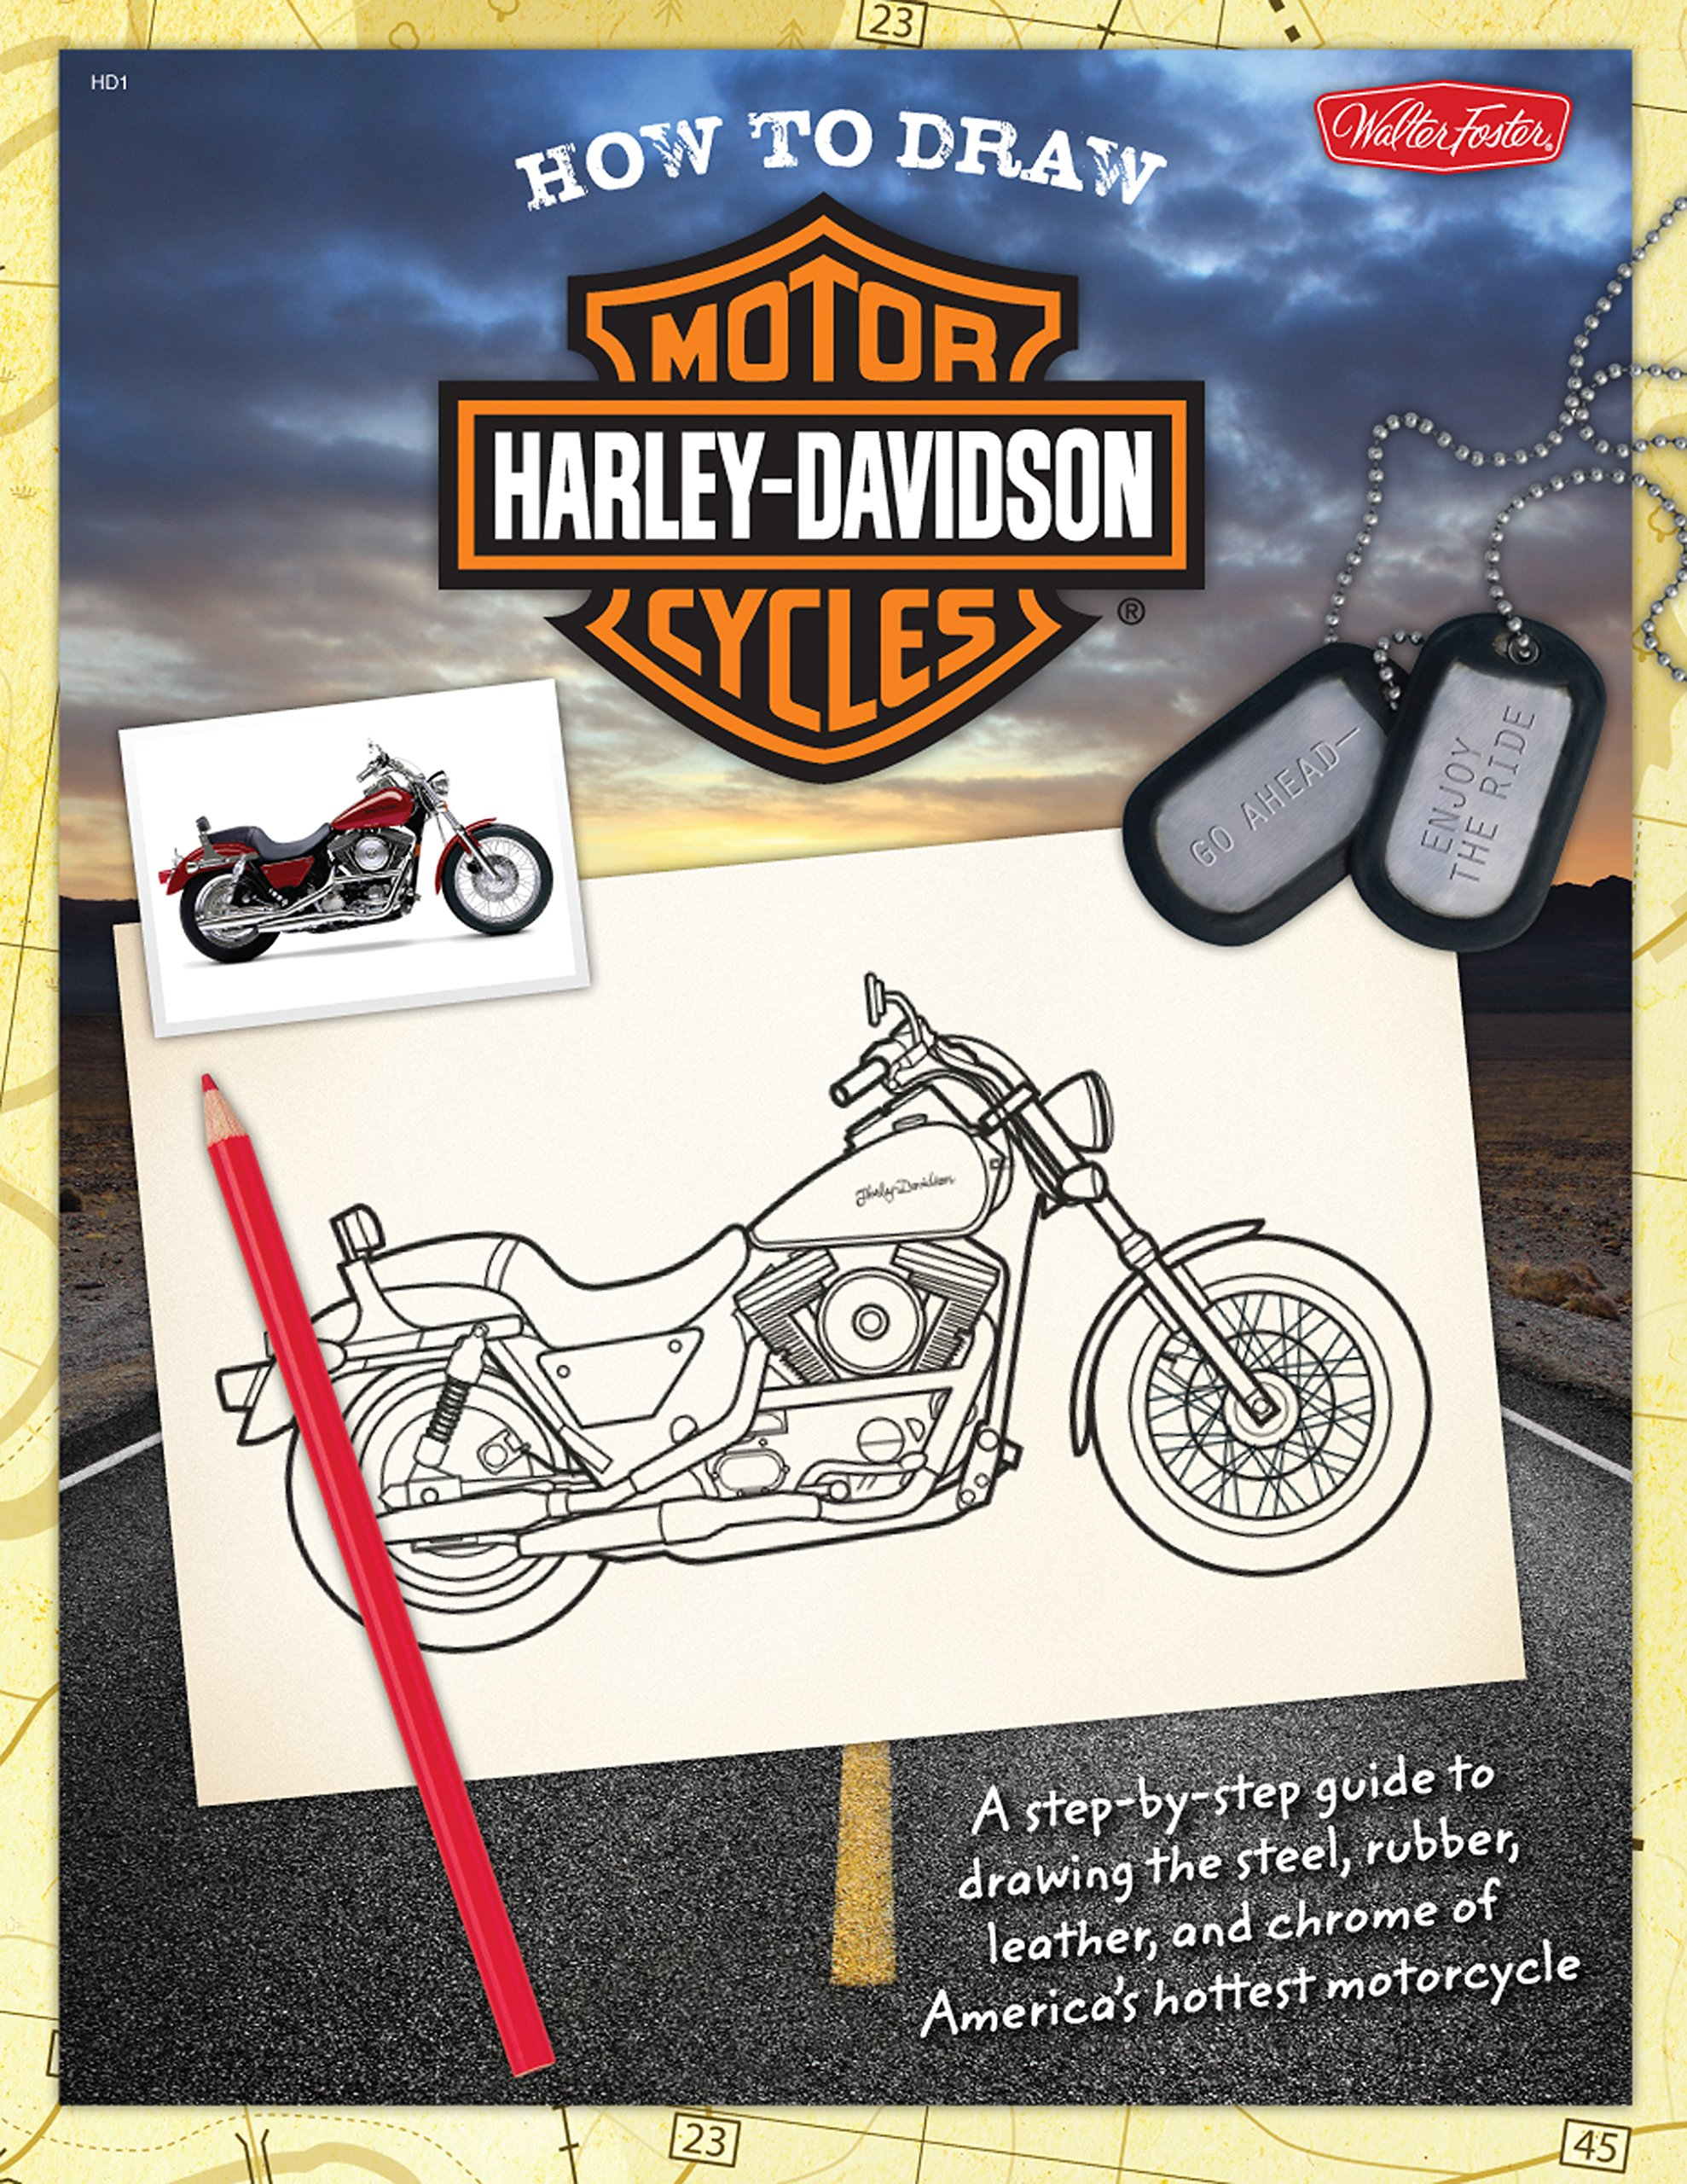 How to Draw Harley-Davidson Motorcycles: A step-by-step guide to drawing the steel, rubber, leather, and chrome of America's hottest motorcycle Paperback – July 1, 2010 Jickie Torres Tom LaPadula Walter Foster Publishing 1600581773